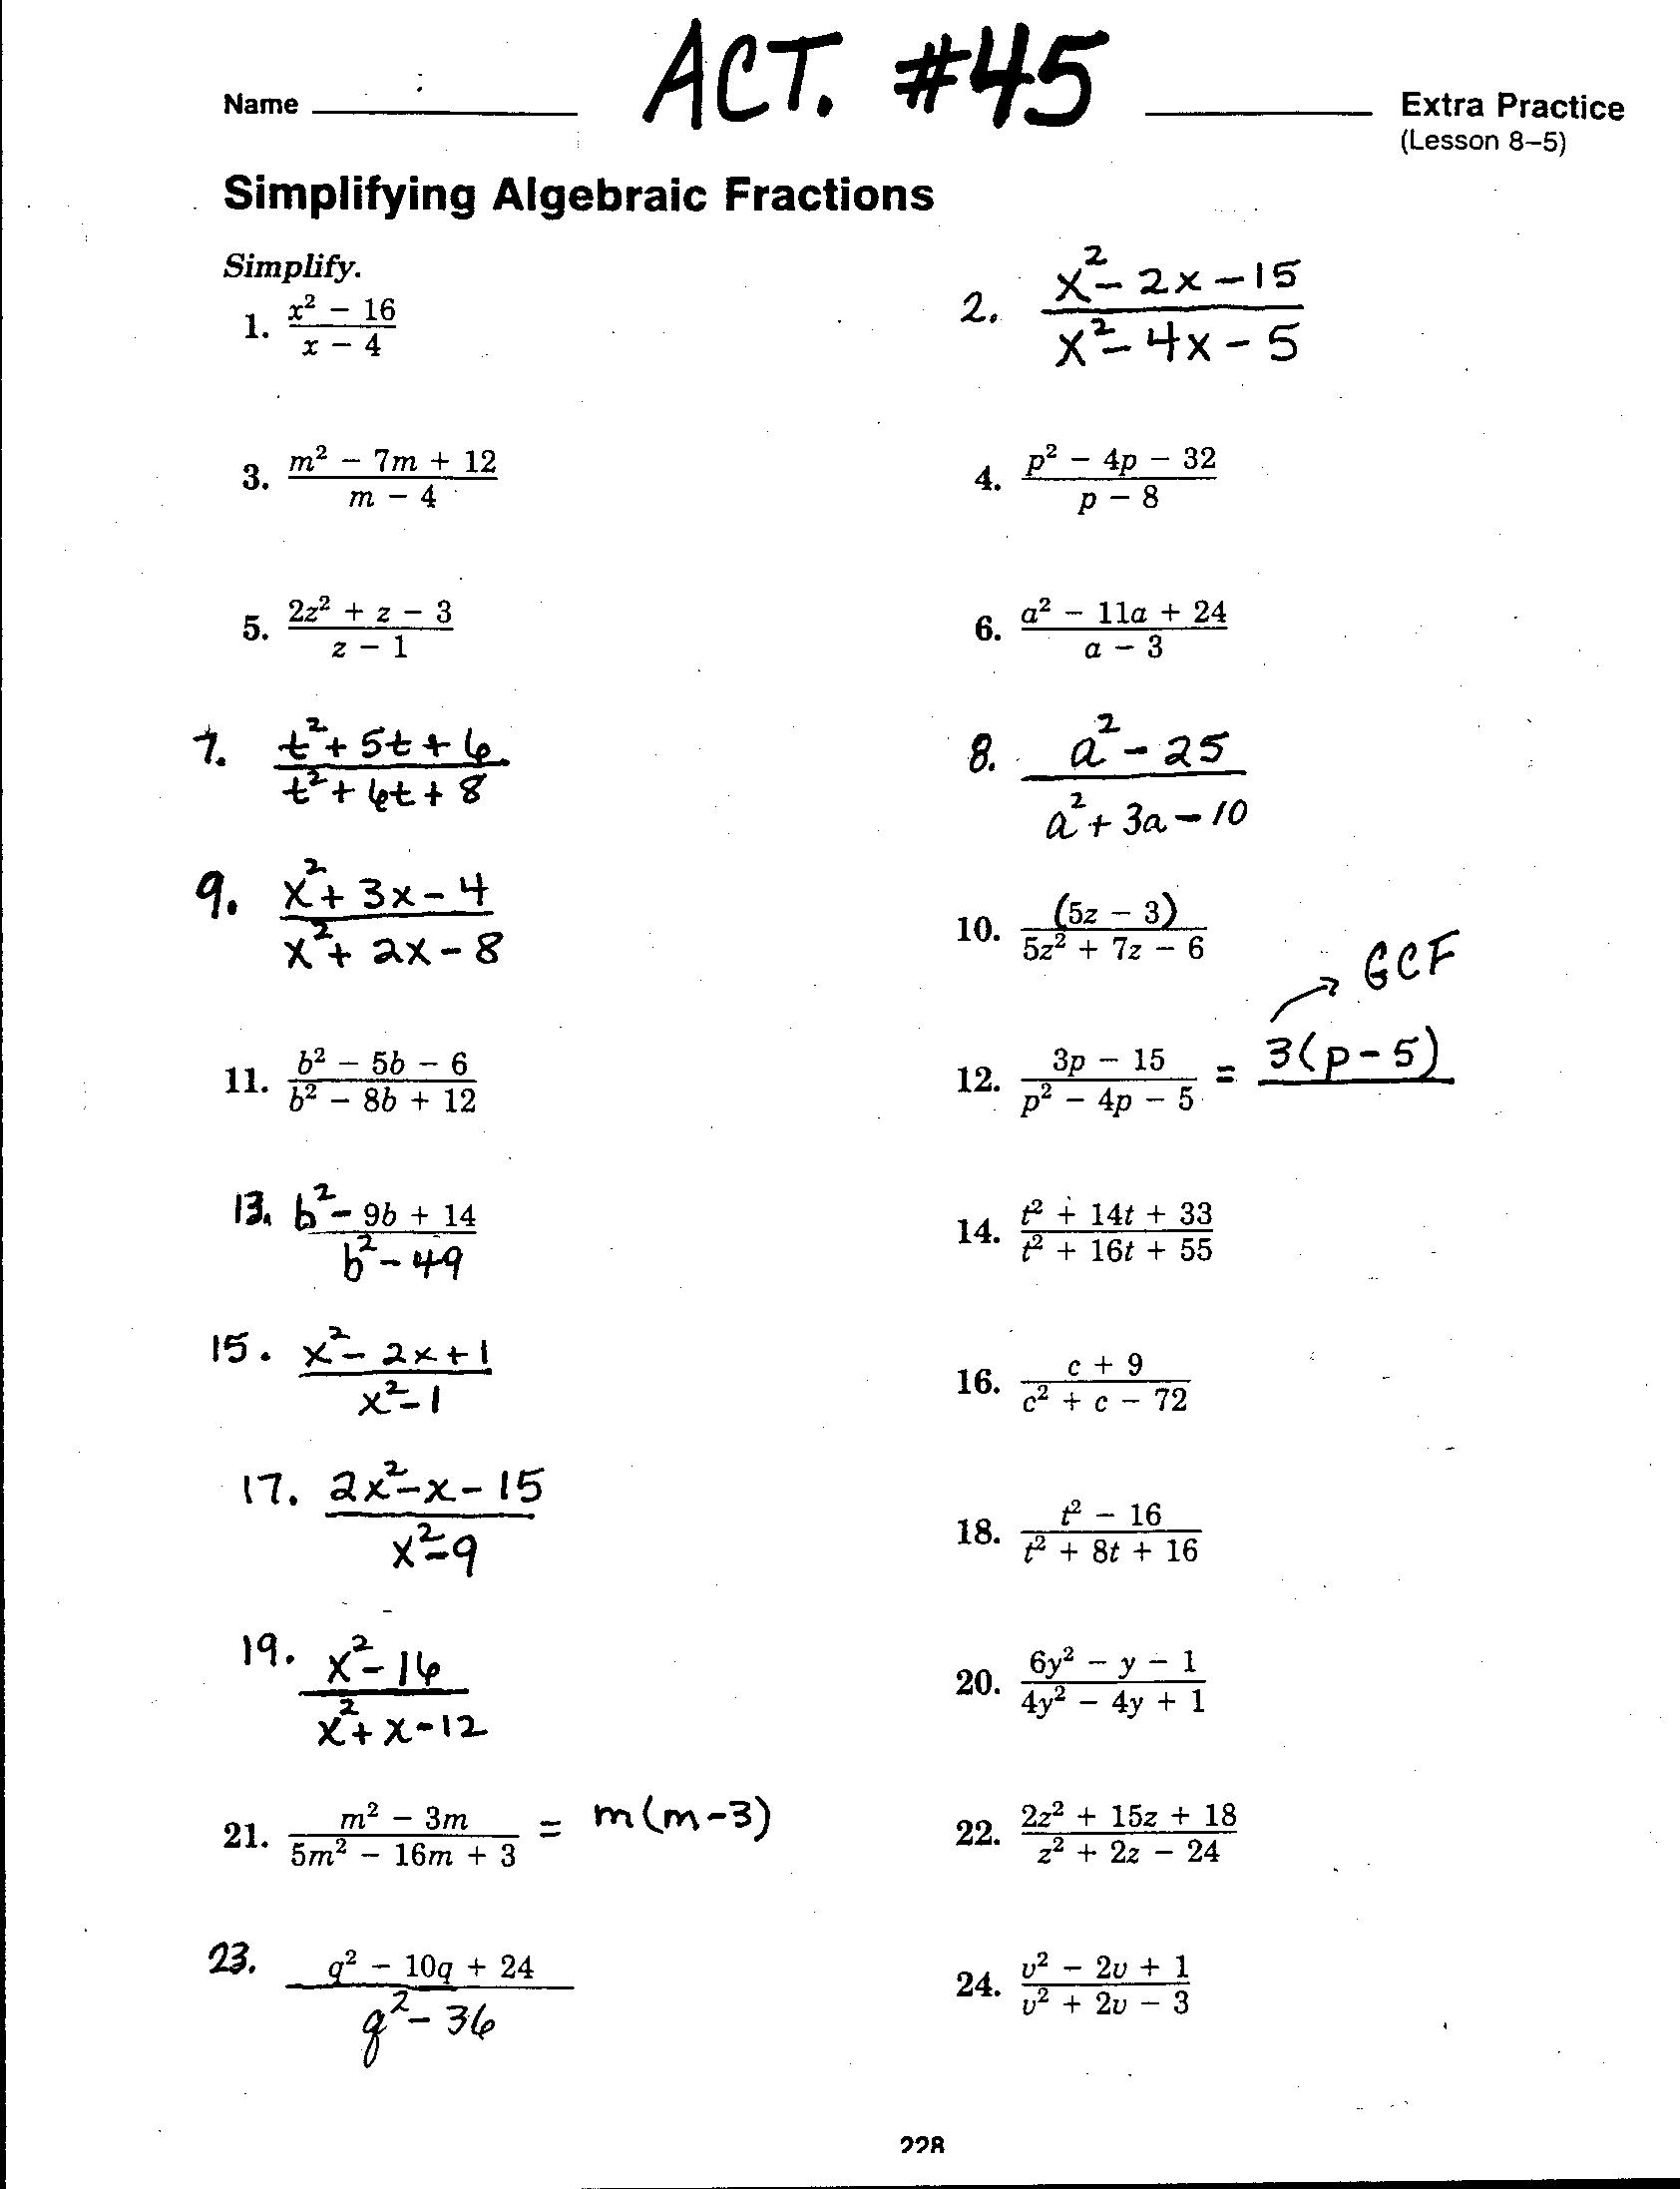 Solve Equations With Rational Coefficients Worksheet Answers